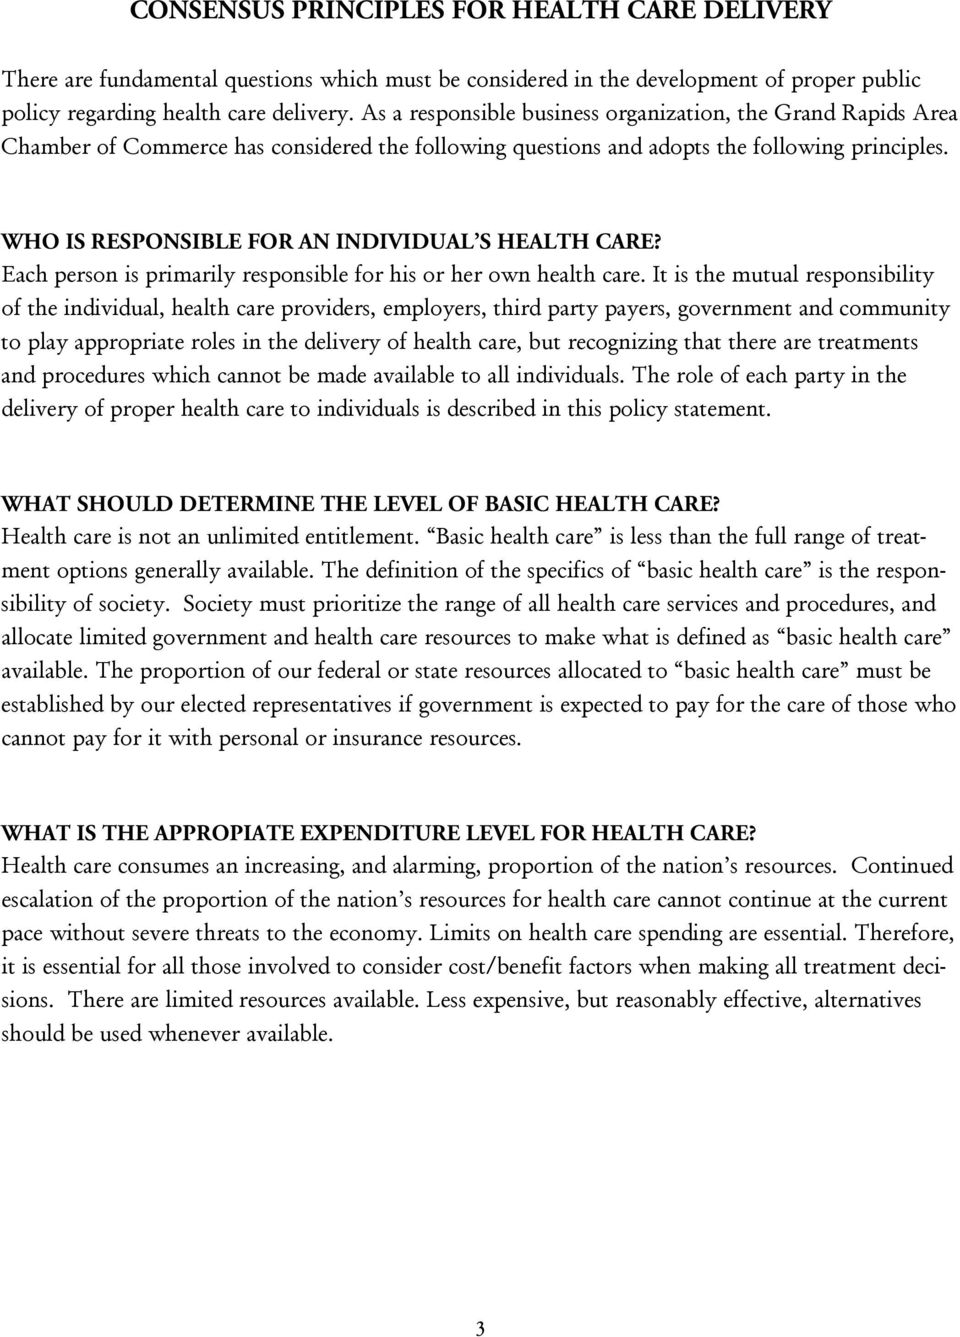 WHO IS RESPONSIBLE FOR AN INDIVIDUAL S HEALTH CARE? Each person is primarily responsible for his or her own health care.